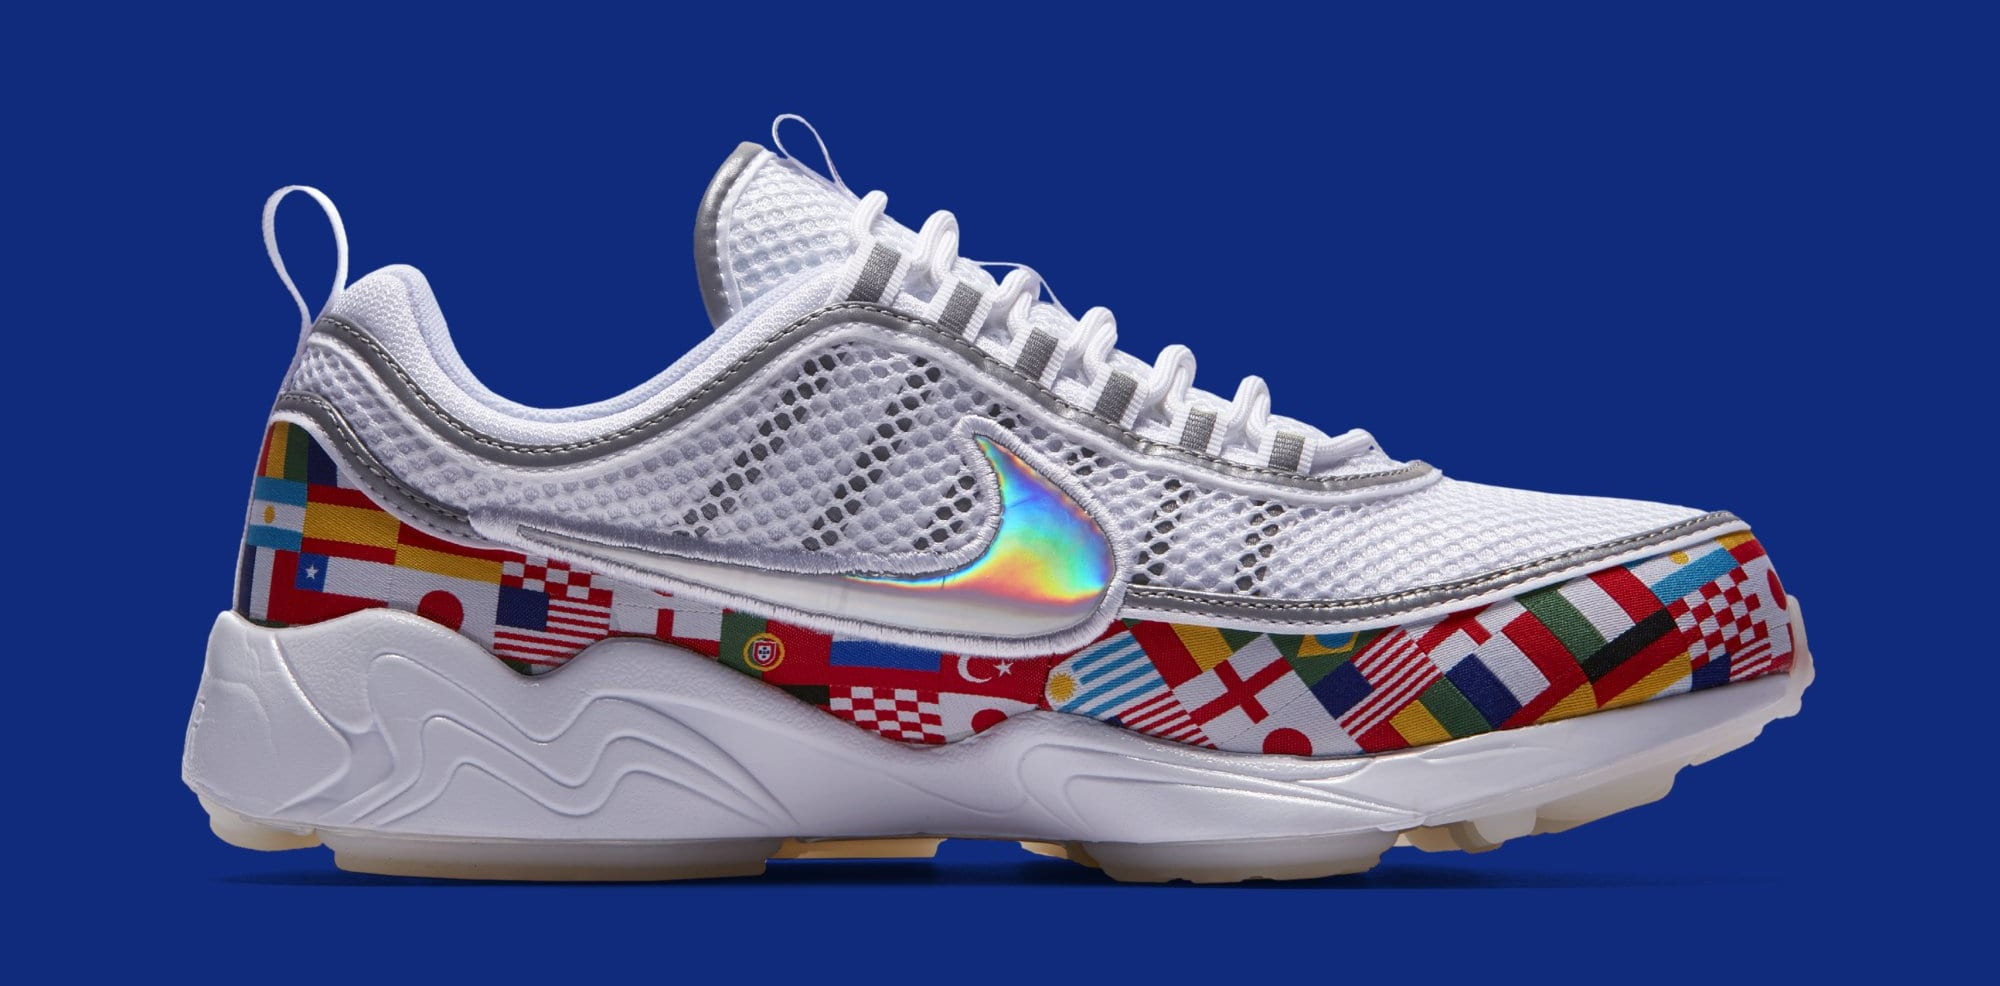 Nike Air Zoom Spiridon 'One World' AO5121-100 (Medial)